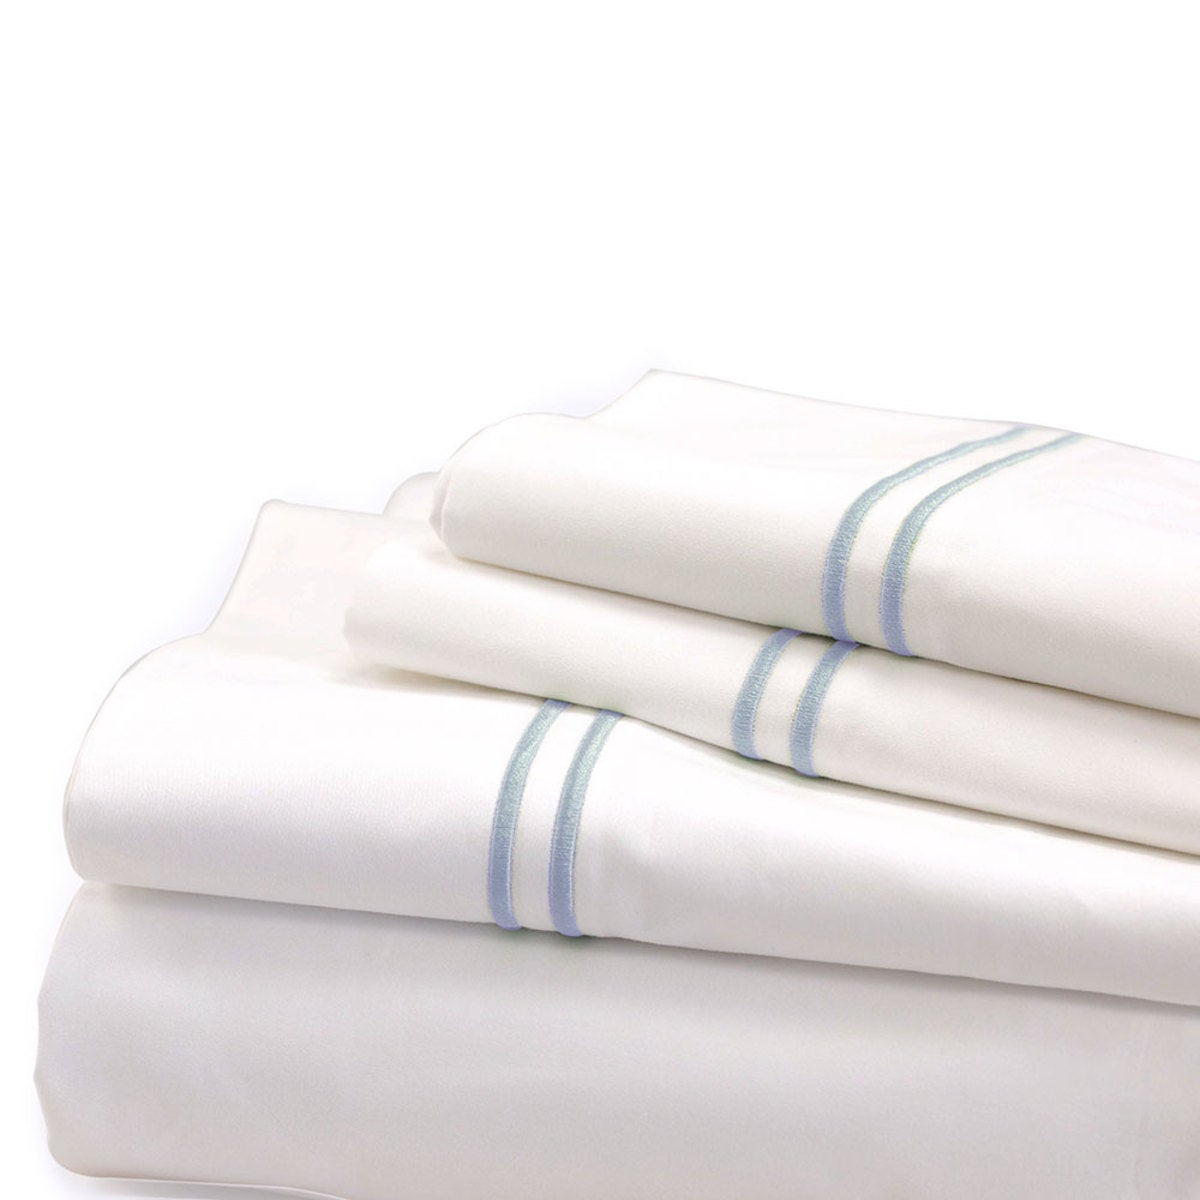 500 Thread Count Sateen Satin Stitch King Sheet Set - White, Blue